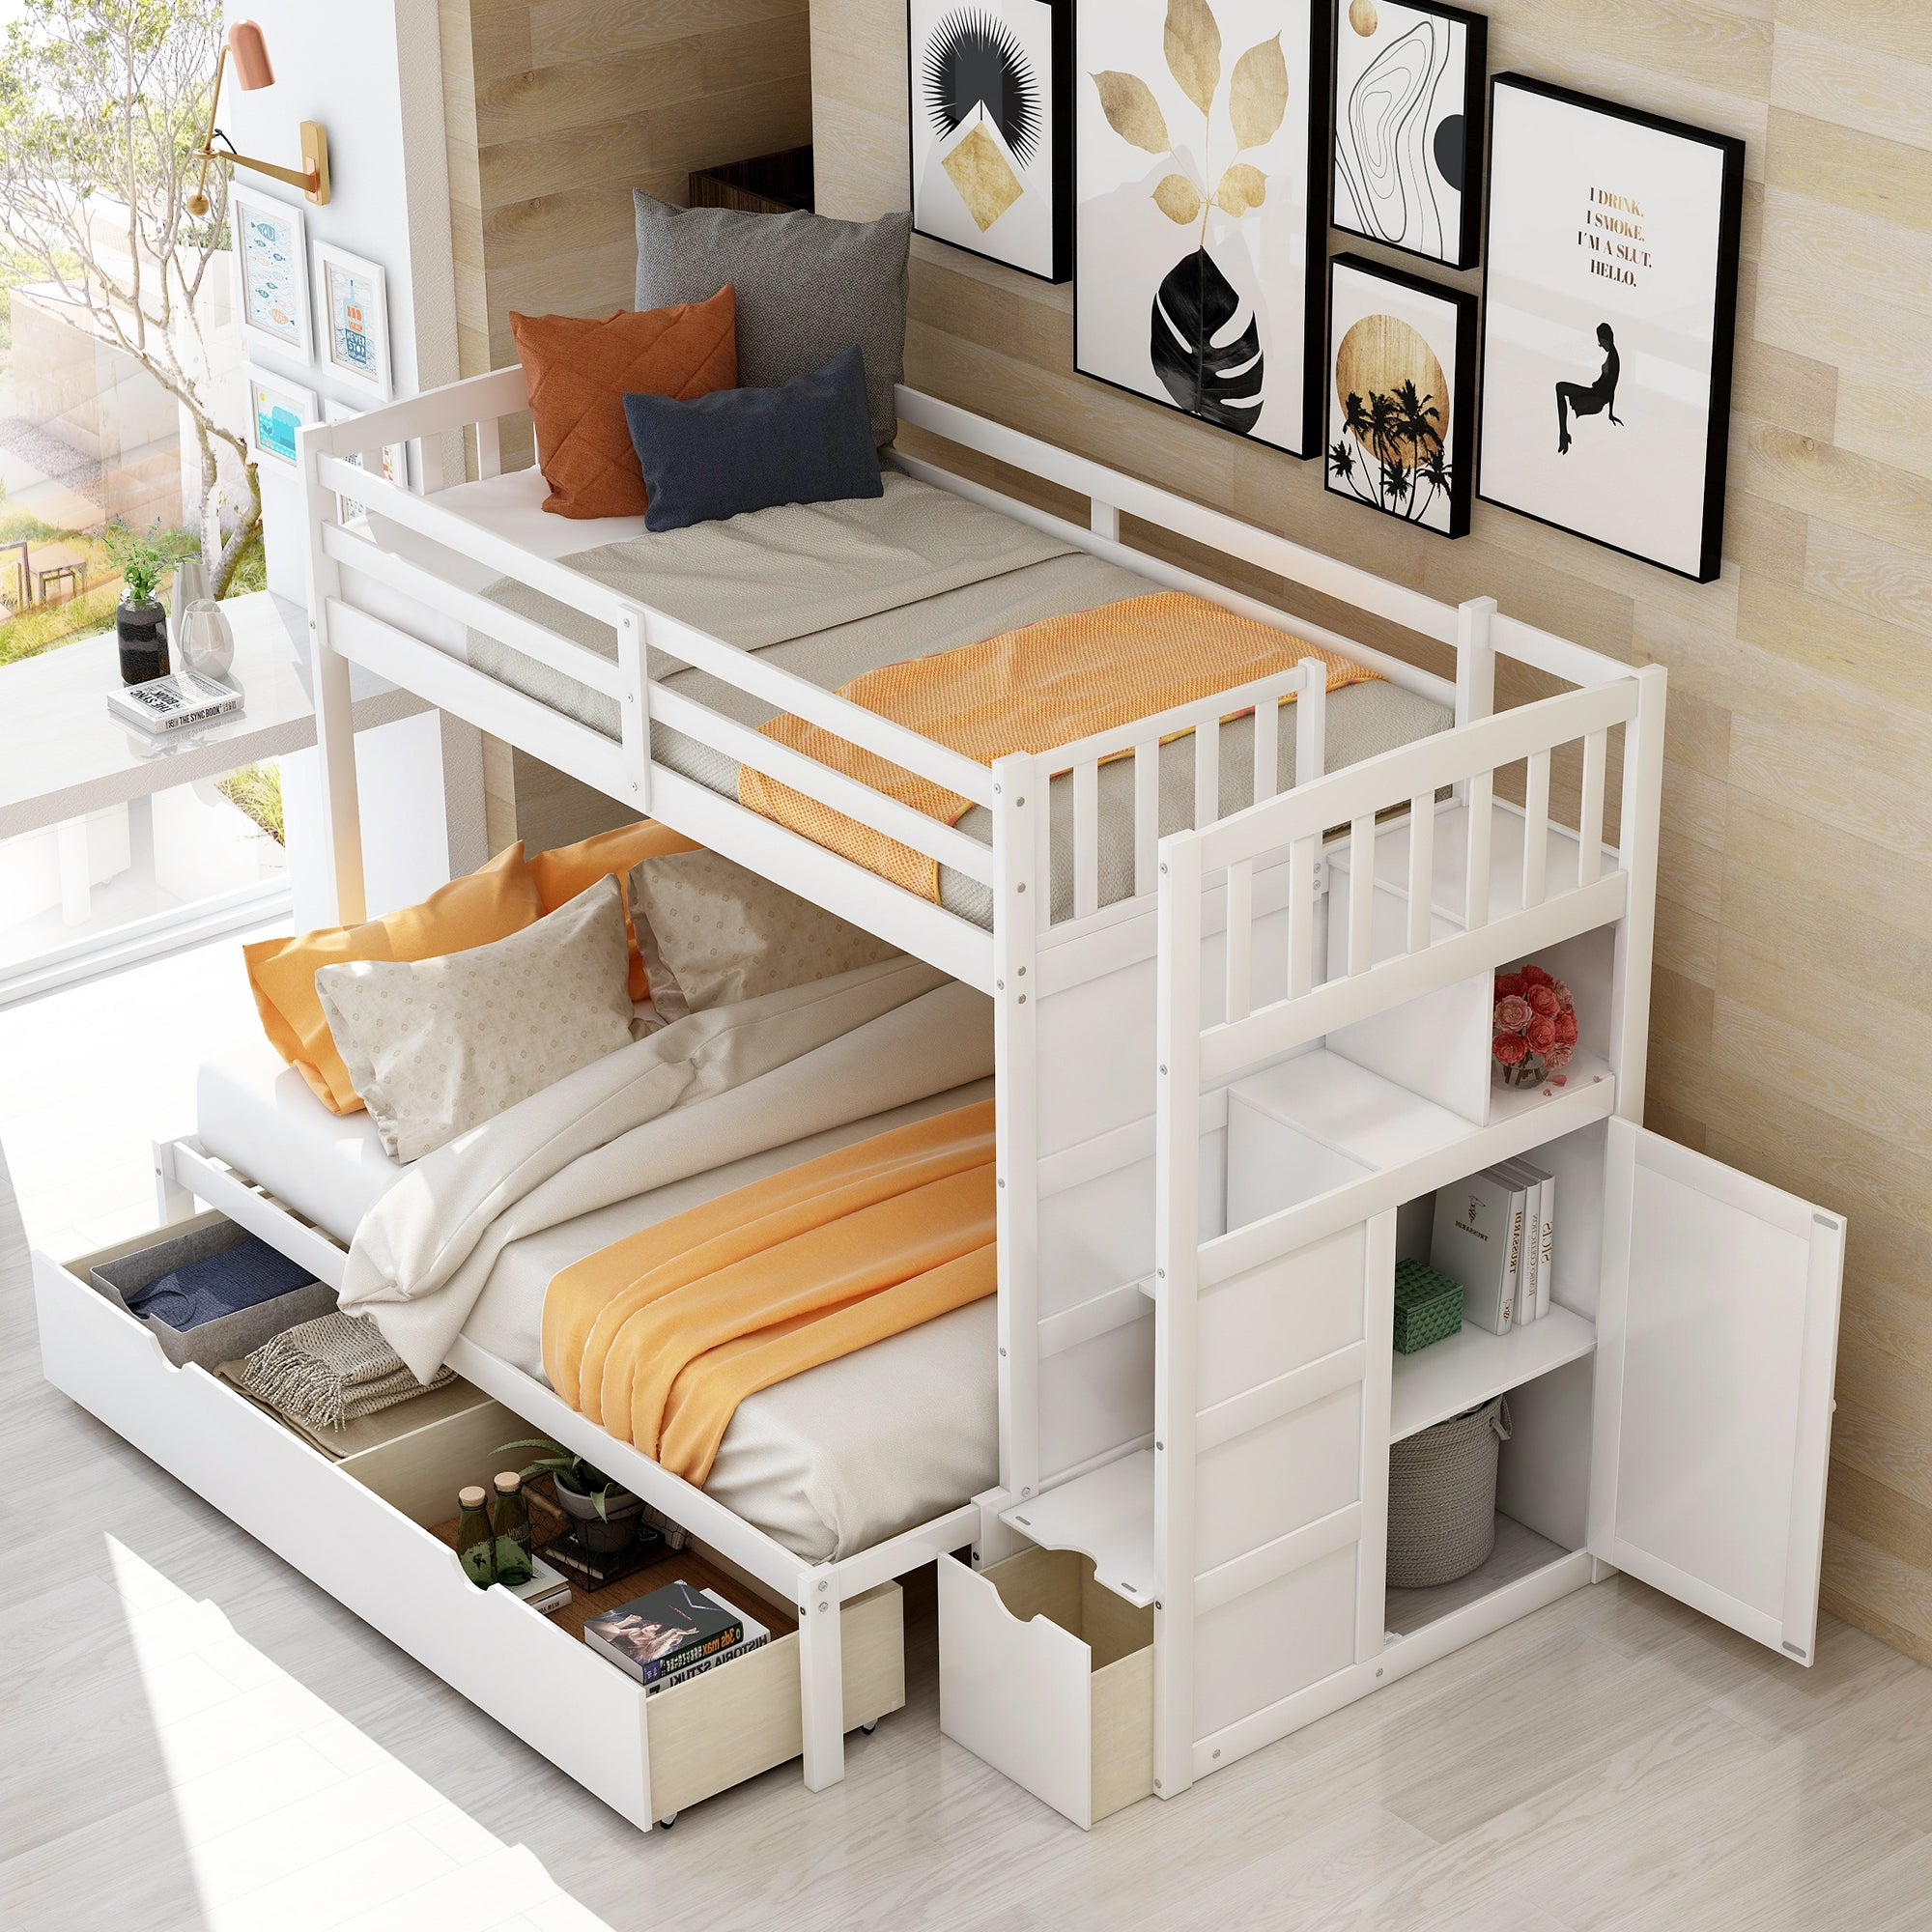 Twin/Full Bunk Bed with Storage Drawer and Cabinet